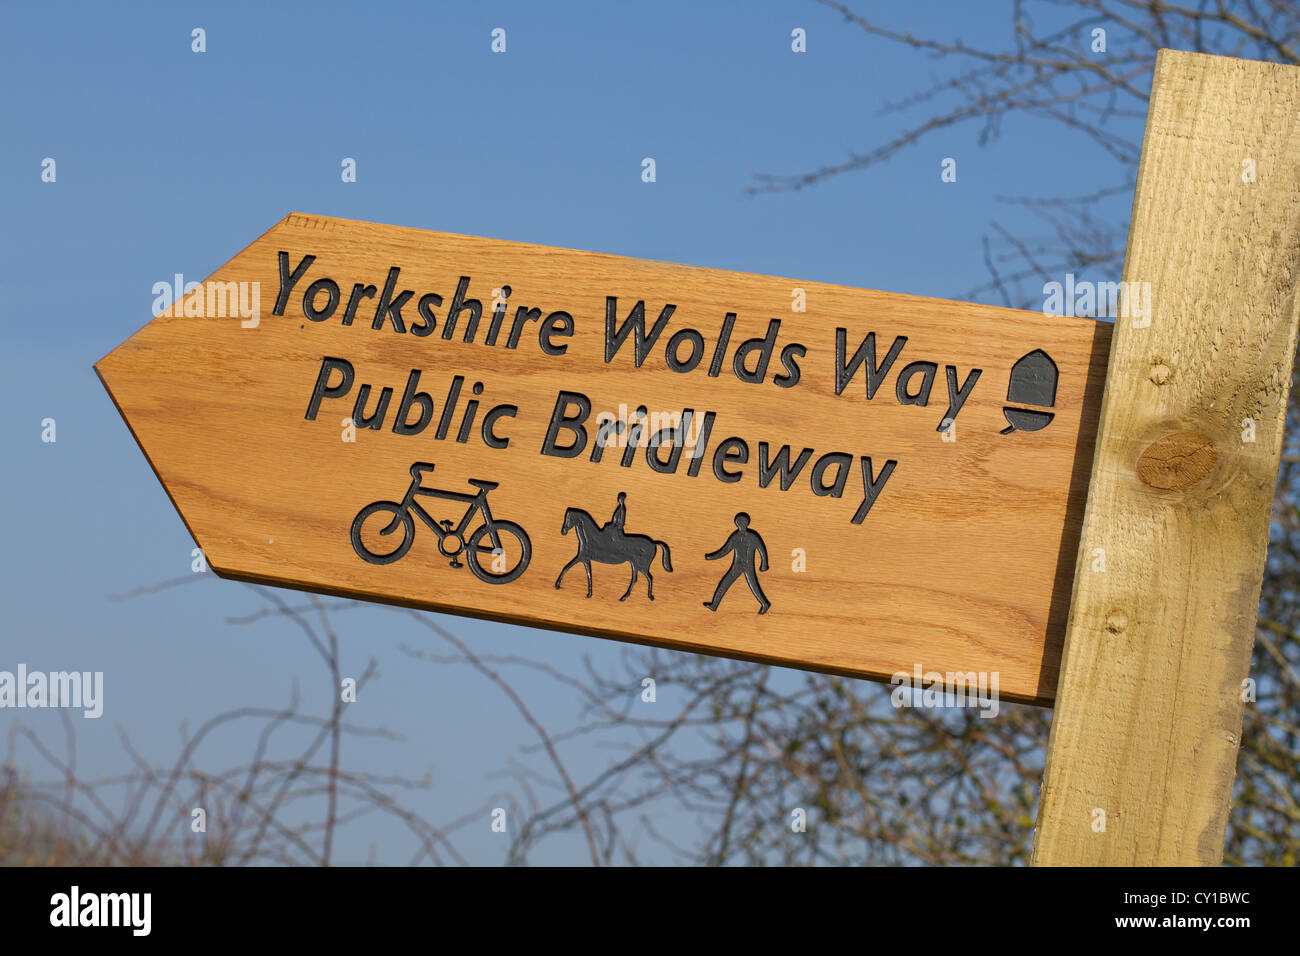 Yorkshire Wolds Way Public Bridleway sign - Stock Image